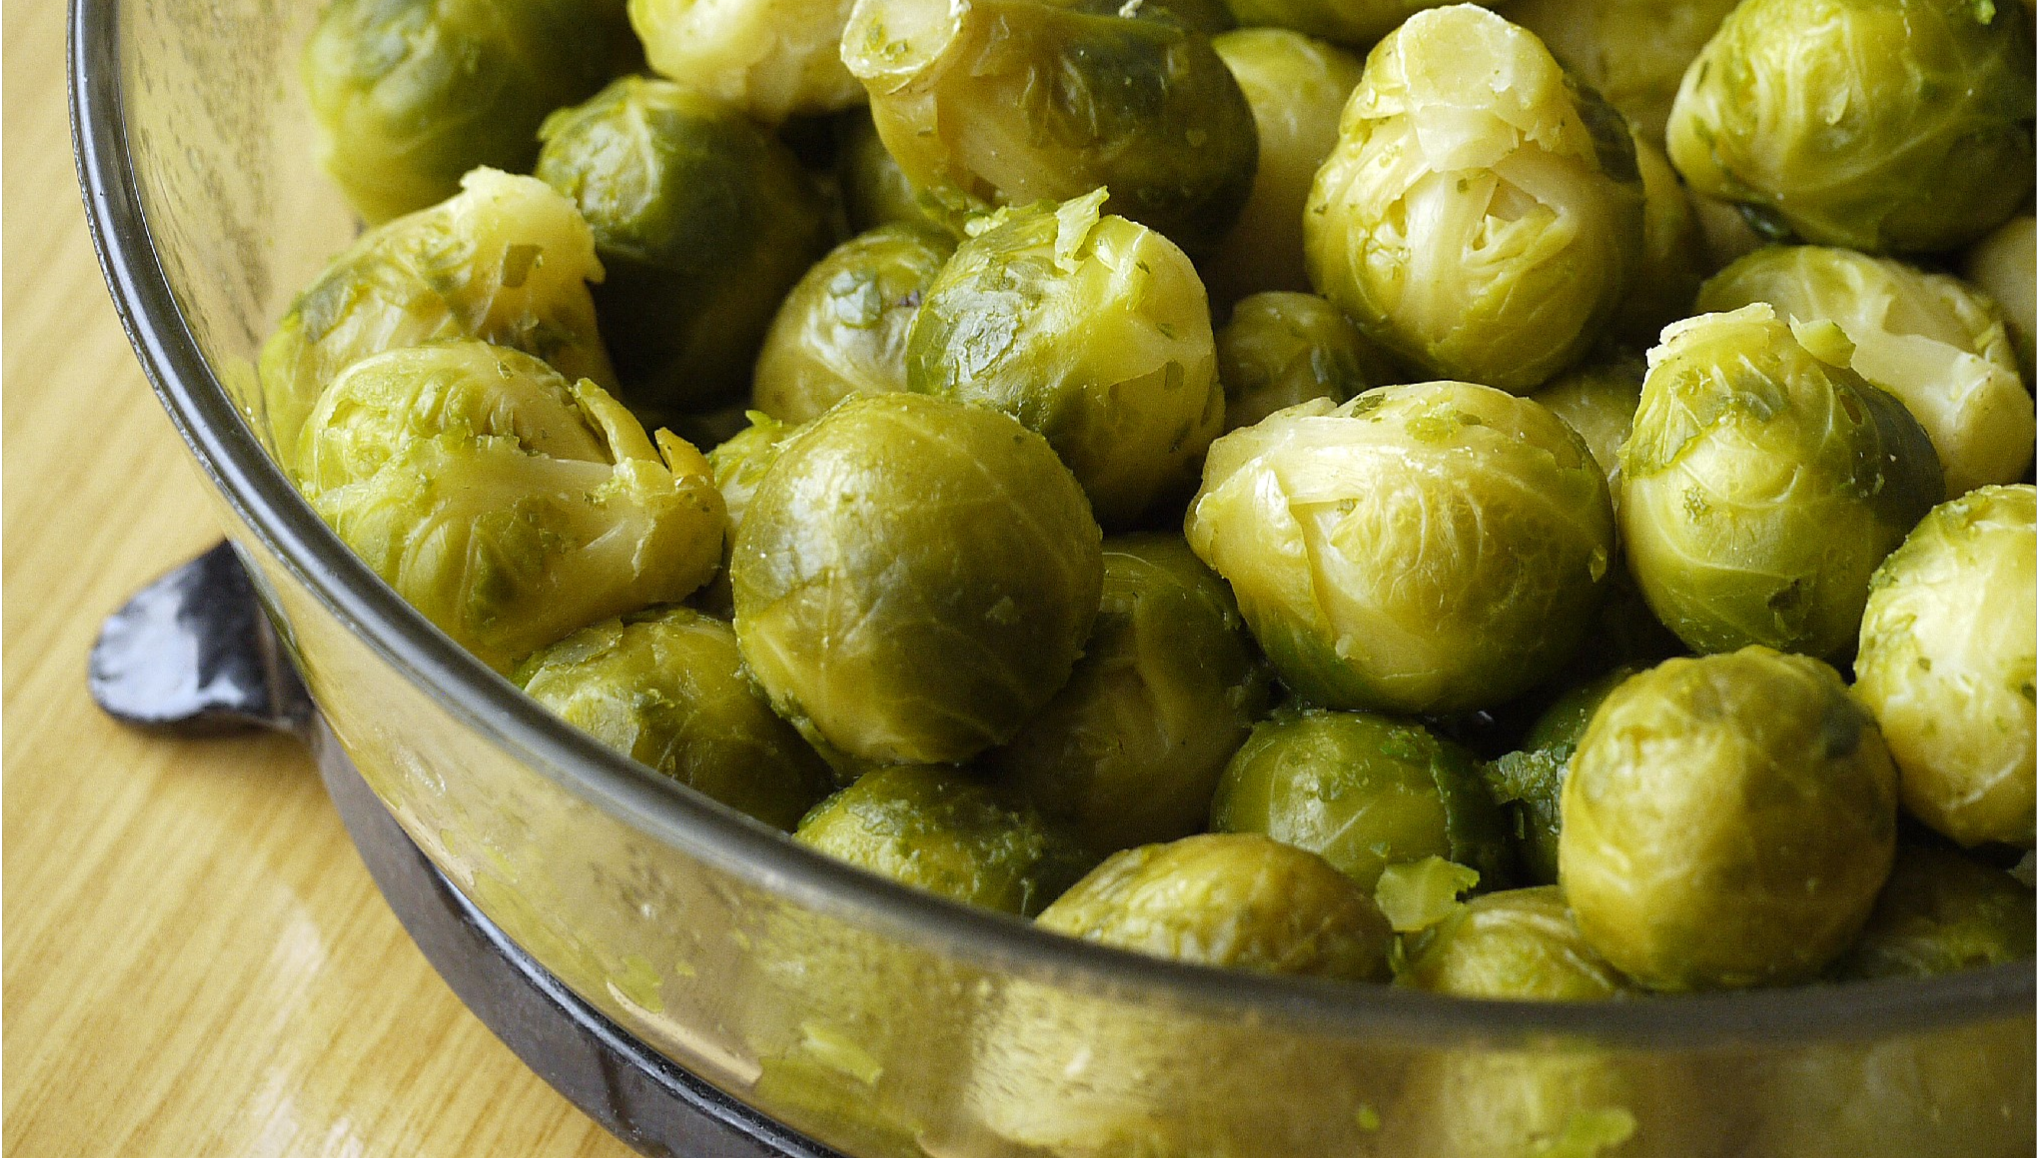 Brussels sprouts make a delicious and colorful gluten free side dish.